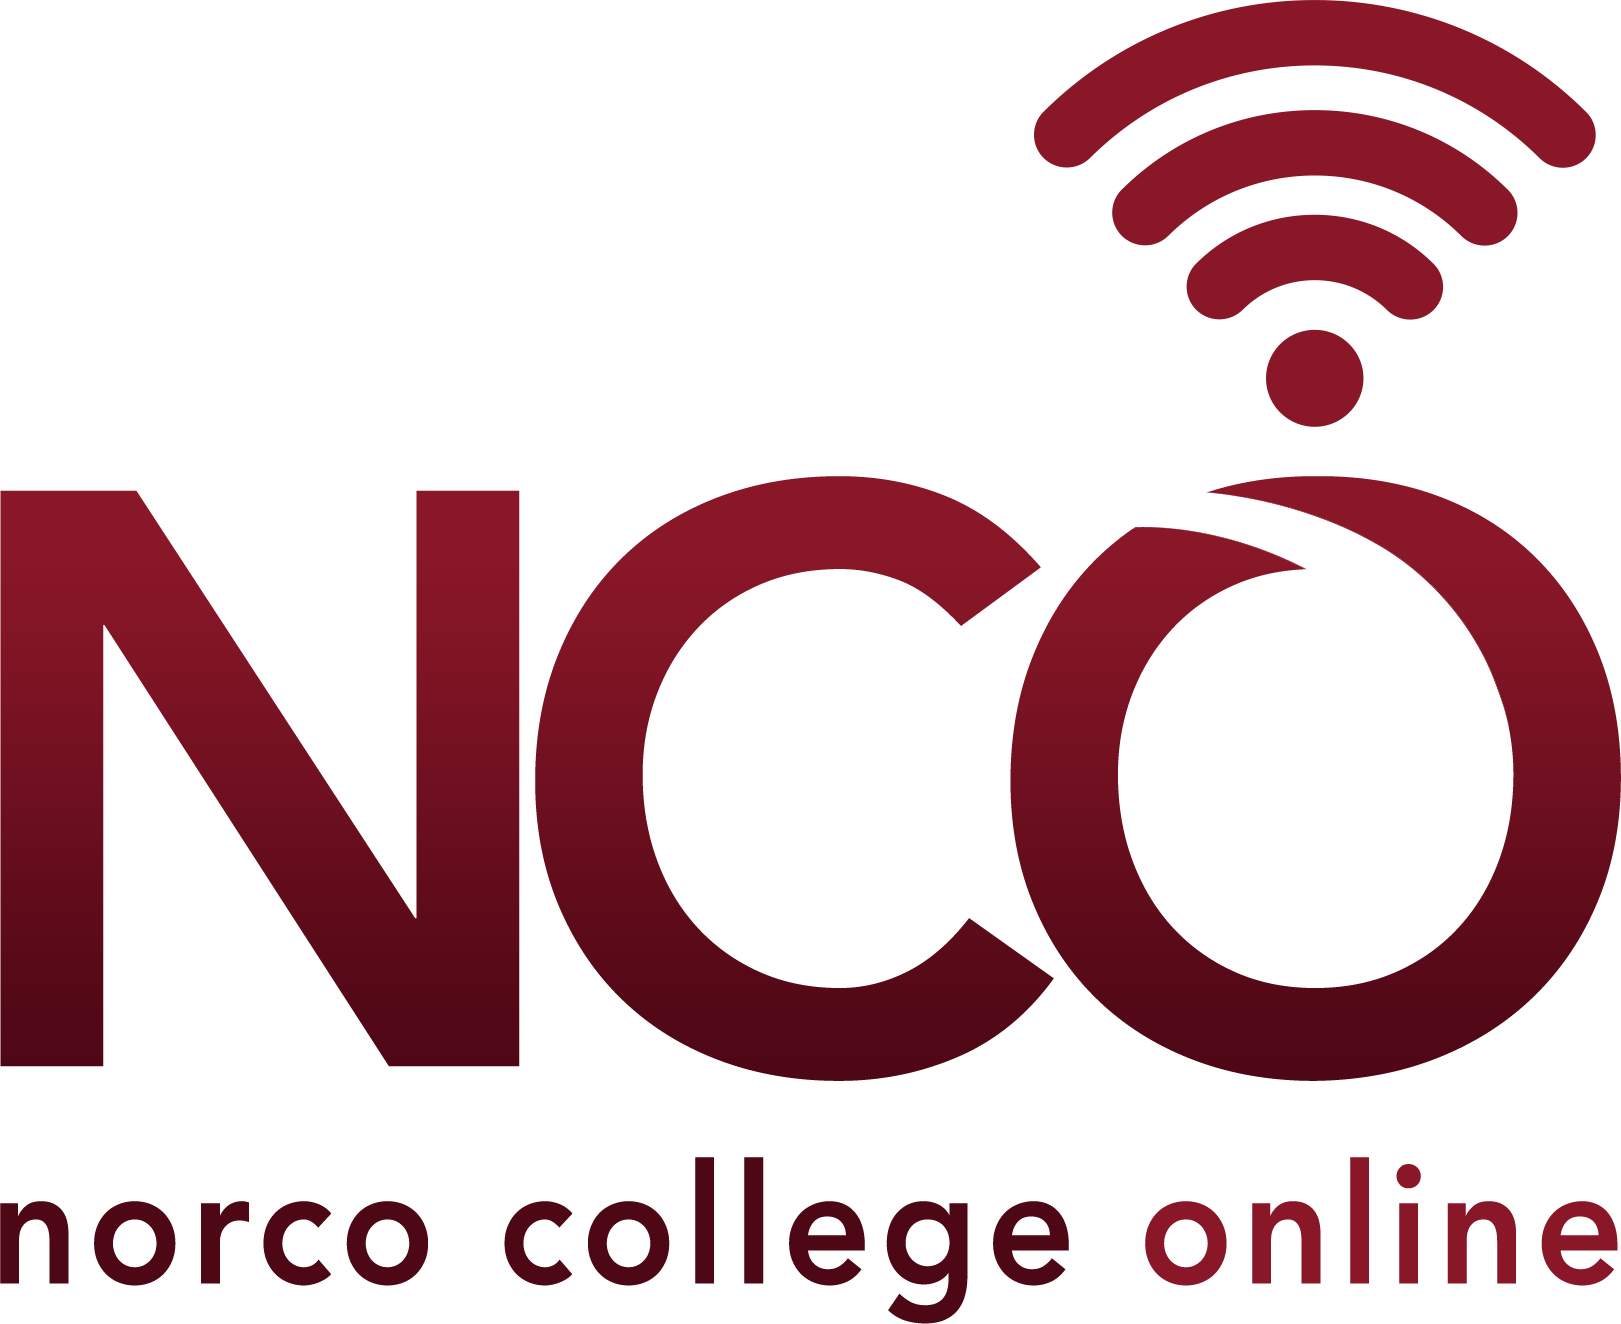 norco college online logo